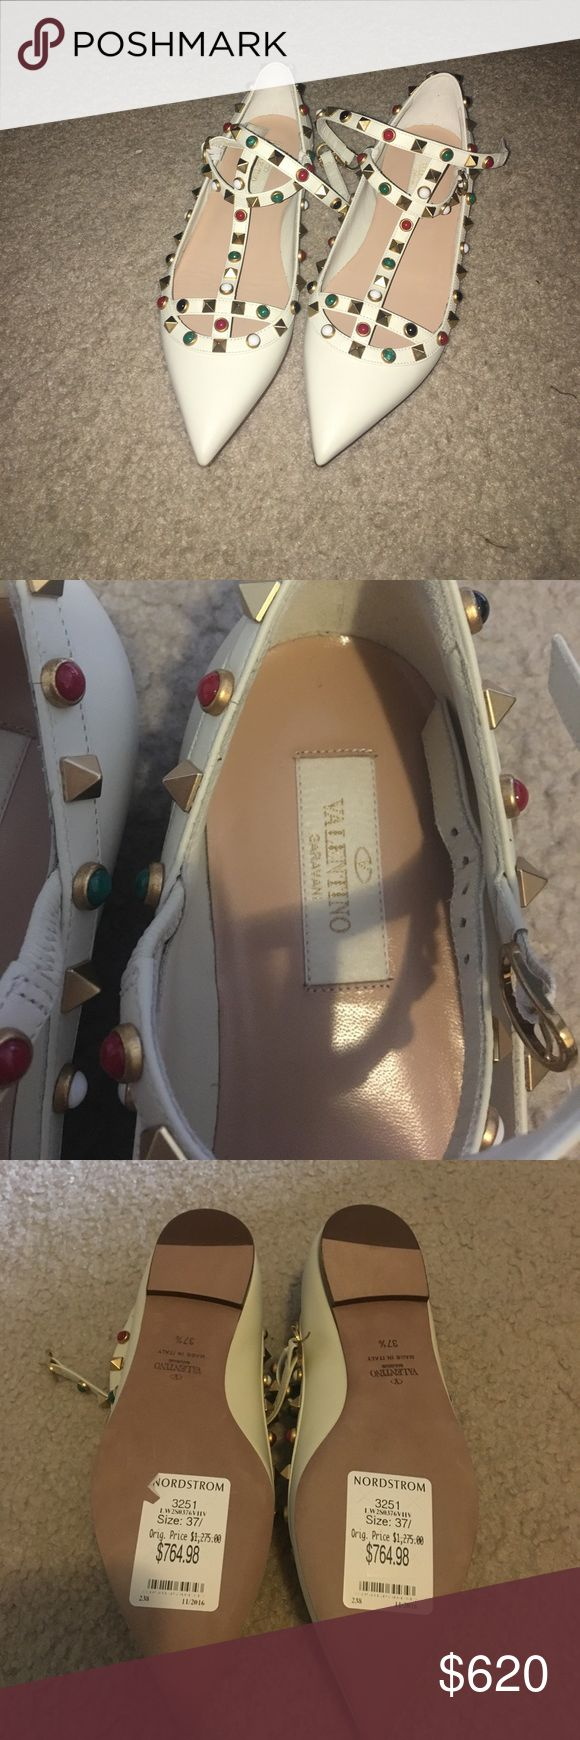 Beautiful Valentino rock stud flats Beautiful Valentino rock stud flats in cream color , 100% authentic, size 37.5, bought from Nordstrom on sale for 764 + tax, comes in a box and dust bag Valentino Shoes Flats & Loafers